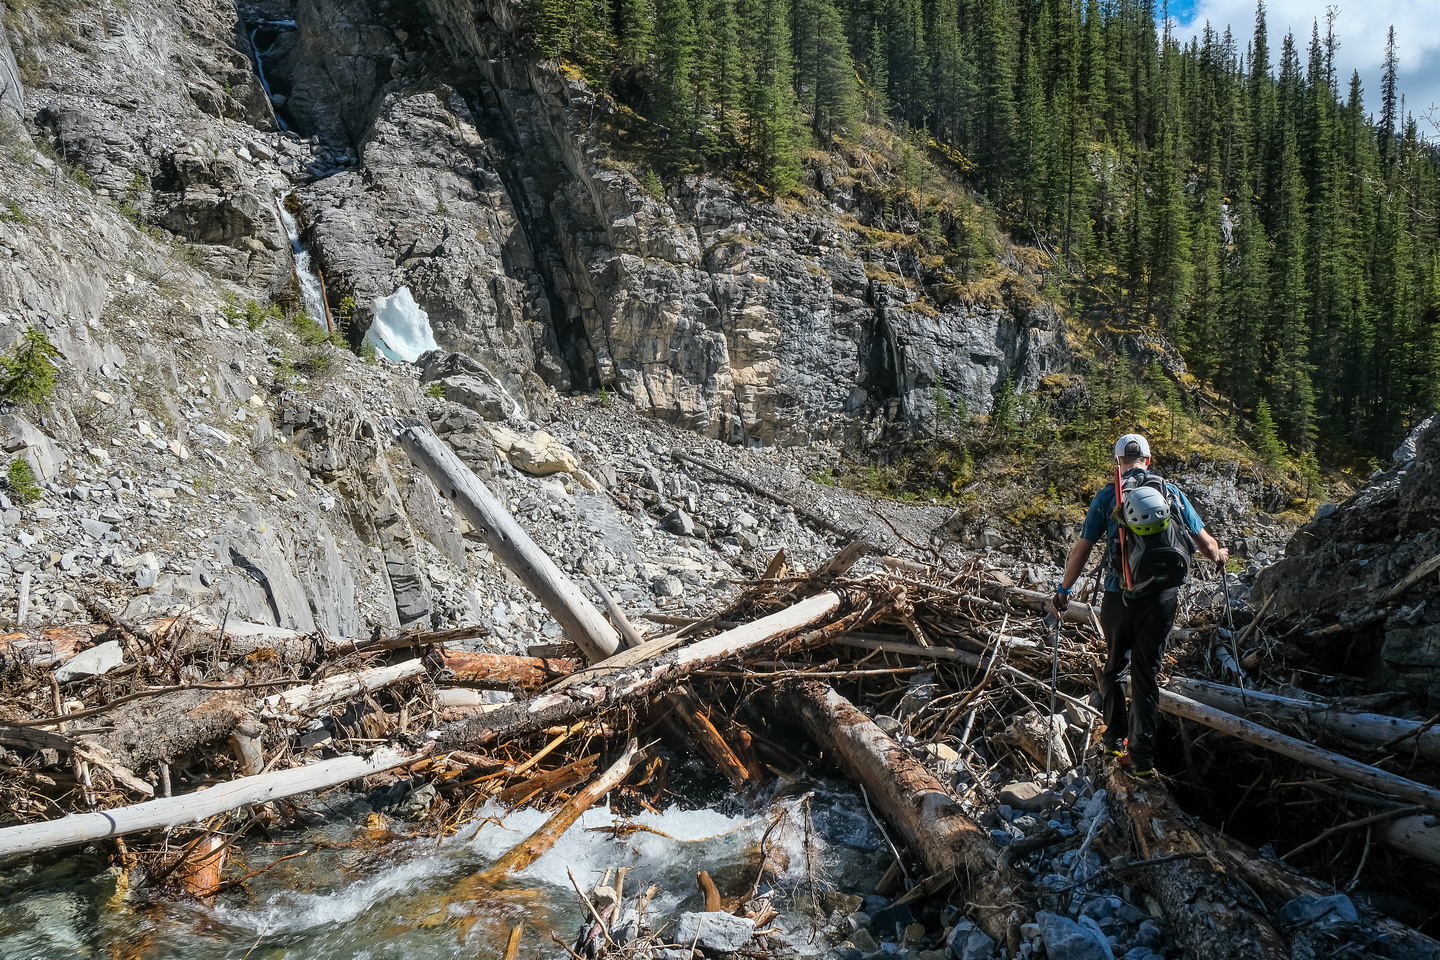 A major log jam along the creek - more evidence of recent heavy flows.